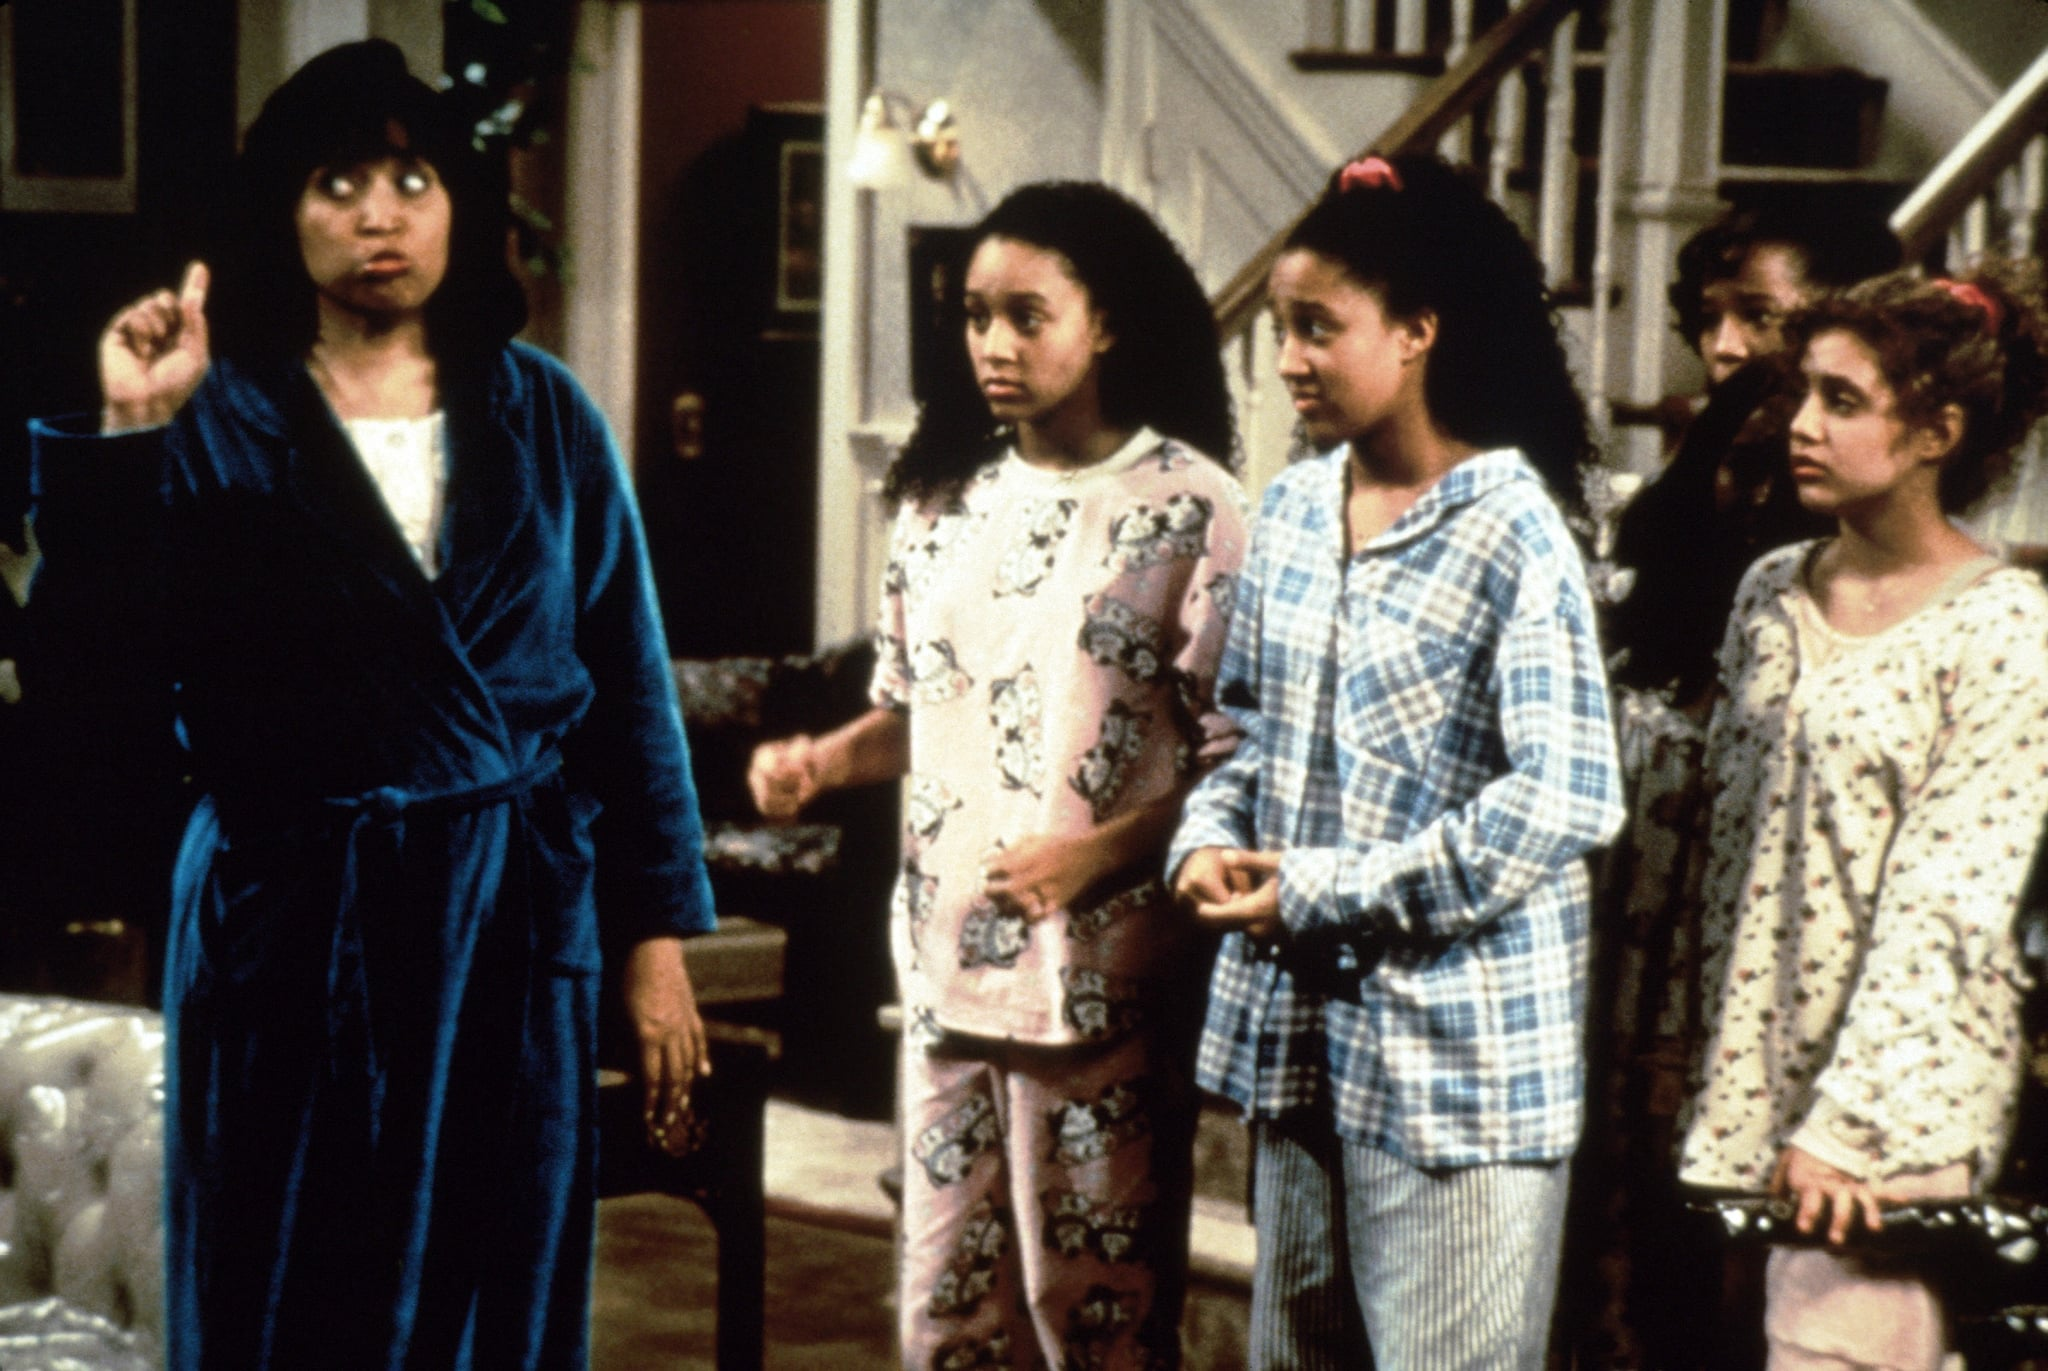 SISTER, SISTER, from left: Jackee Harry, Tia Mowry, Tamera Mowry, Brittany Murphy, 'Slumber Party,' (aired April 8, 1994), 1994-1999,  Paramount Television/courtesy Everett Collection